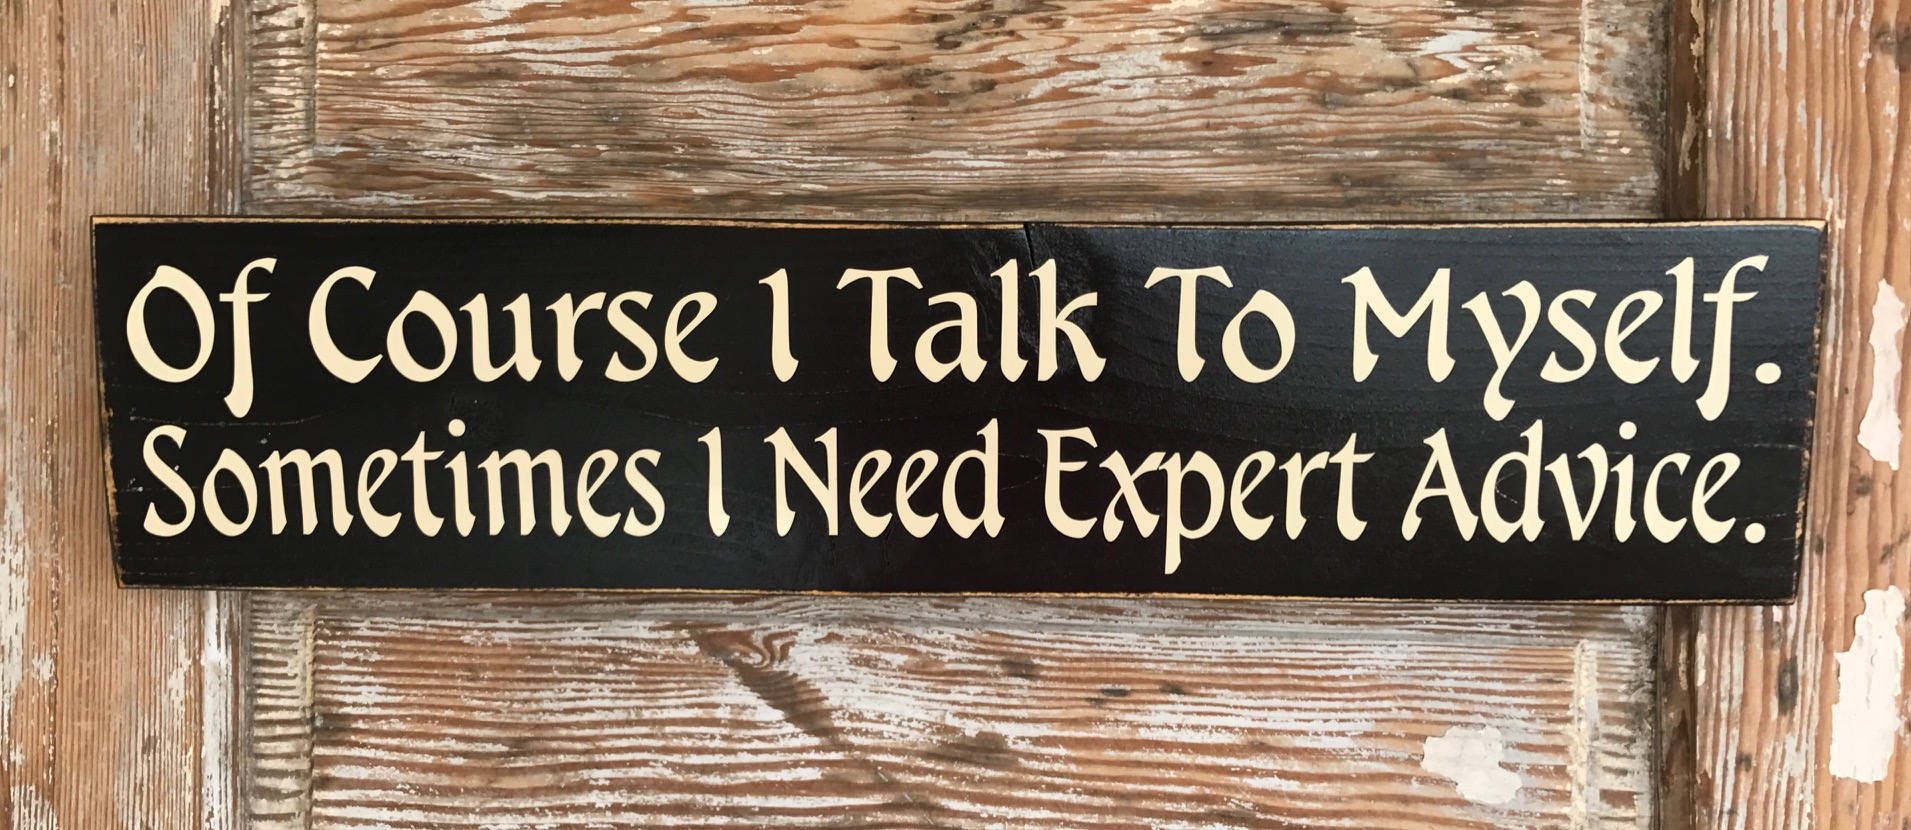 Of Course I Talk To Myself.  Sometimes I Need Expert Advice.  Wood Sign